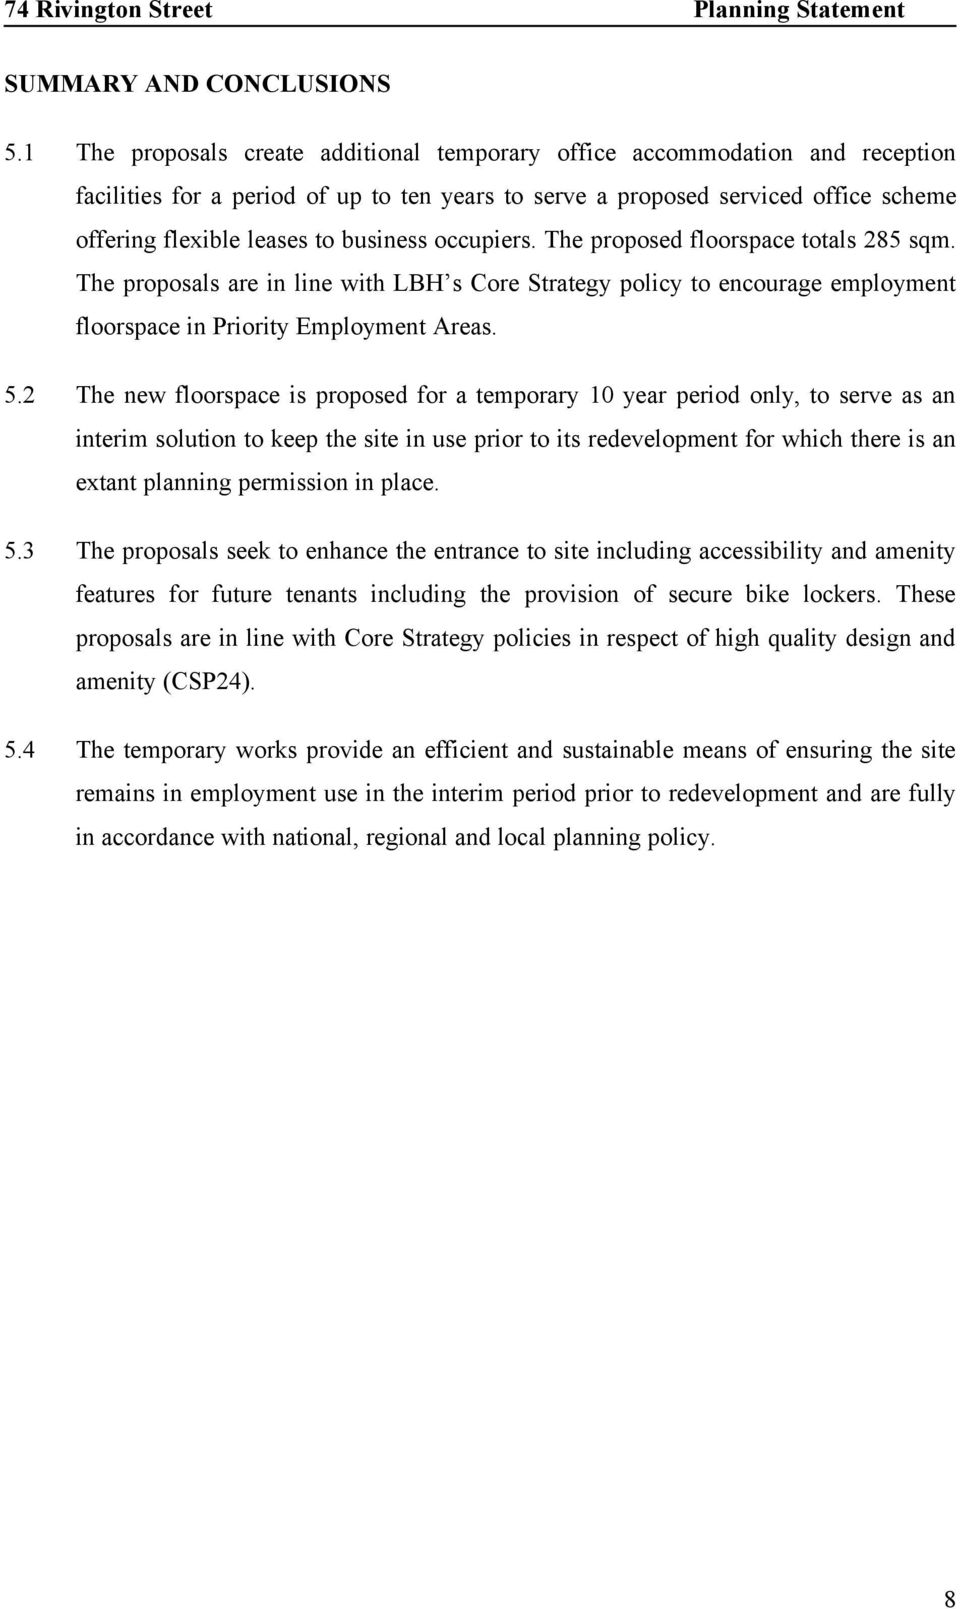 business occupiers. The proposed floorspace totals 285 sqm. The proposals are in line with LBH s Core Strategy policy to encourage employment floorspace in Priority Employment Areas. 5.